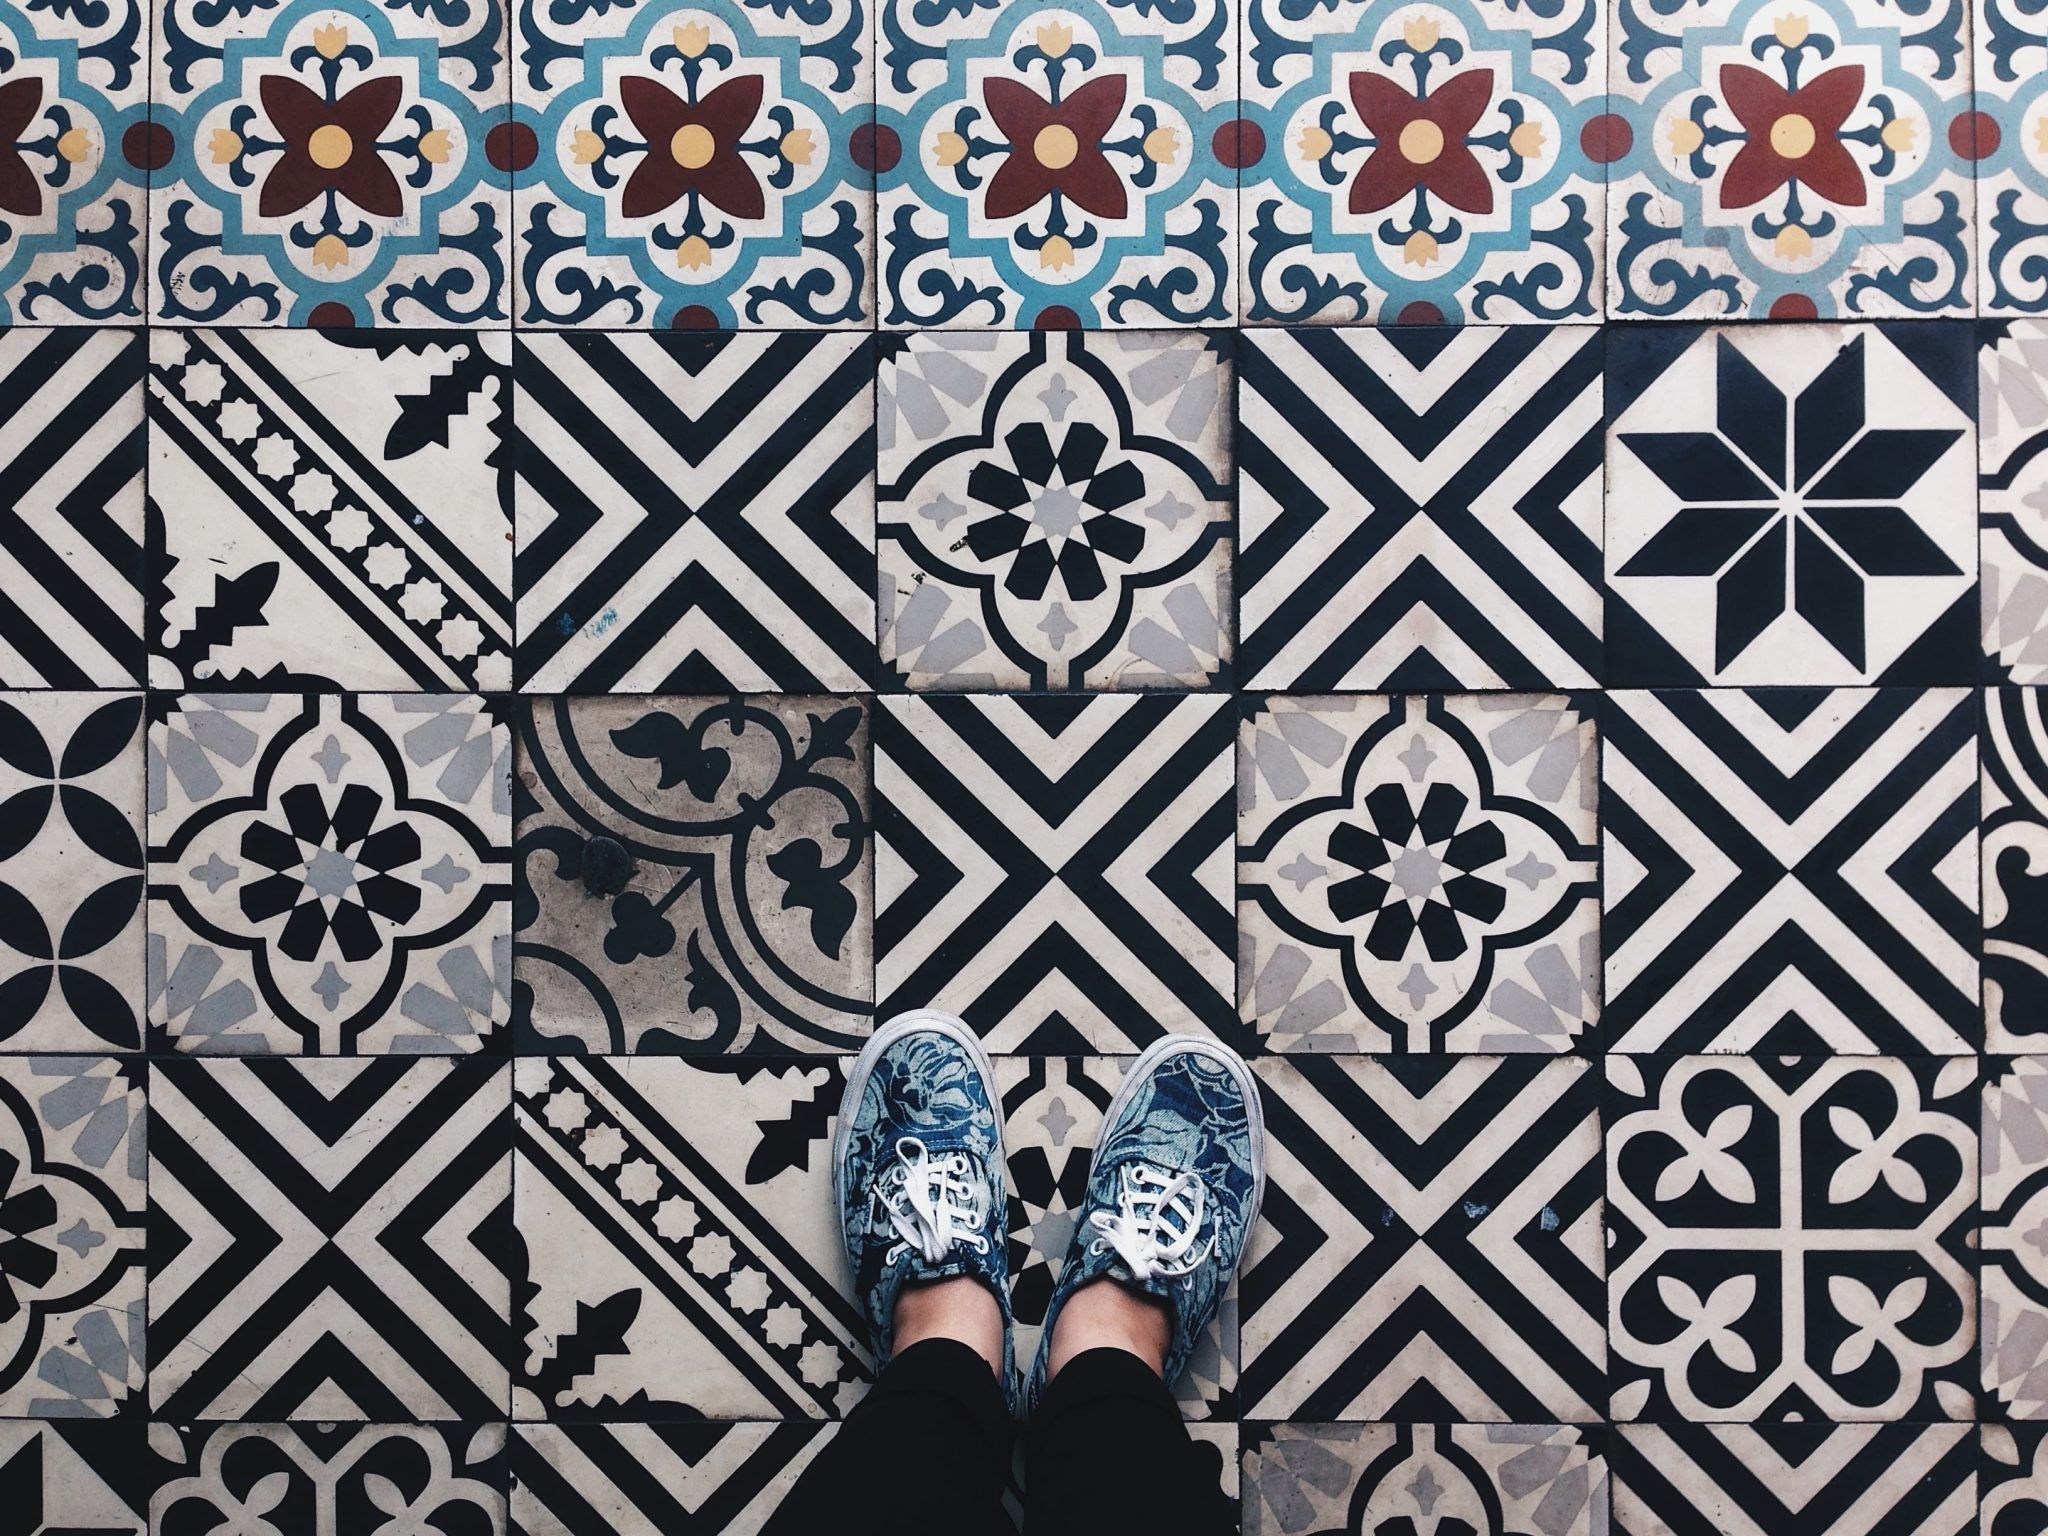 How To Clean Tile Floors Without Damaging Them Or Working Too Hard Http Www Lifeoftrends Com How To Clean Til Black And White Tiles Vintage Tile Vietnam Art